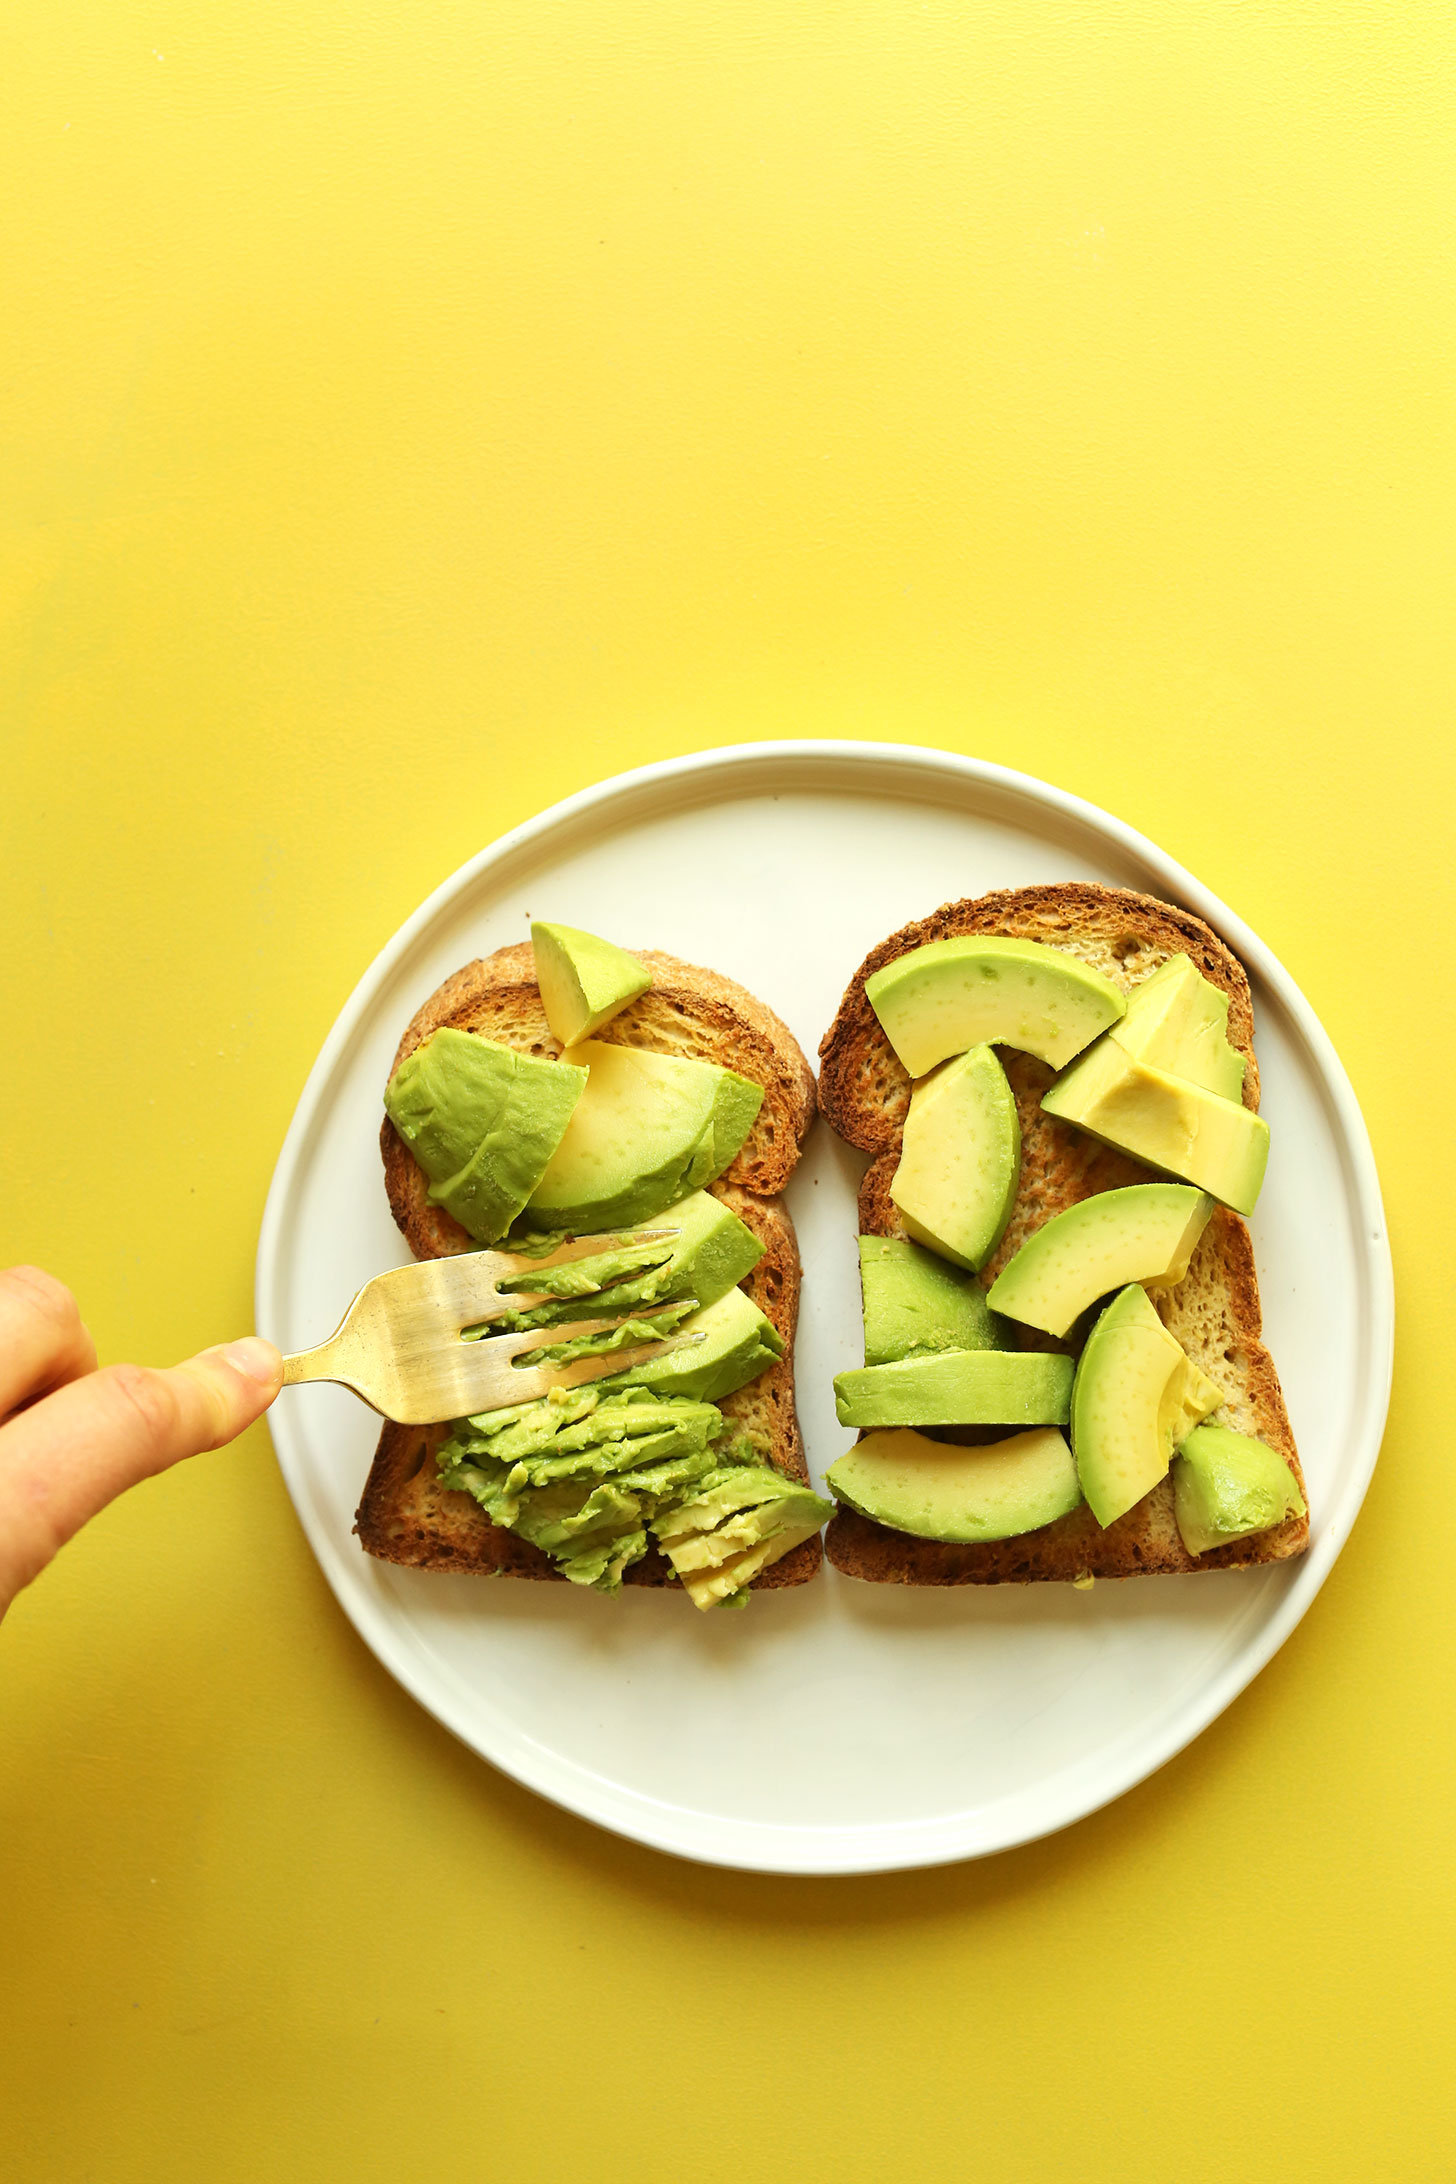 Smashing avocado onto gluten-free bread for the most delicious vegan avocado toast recipe